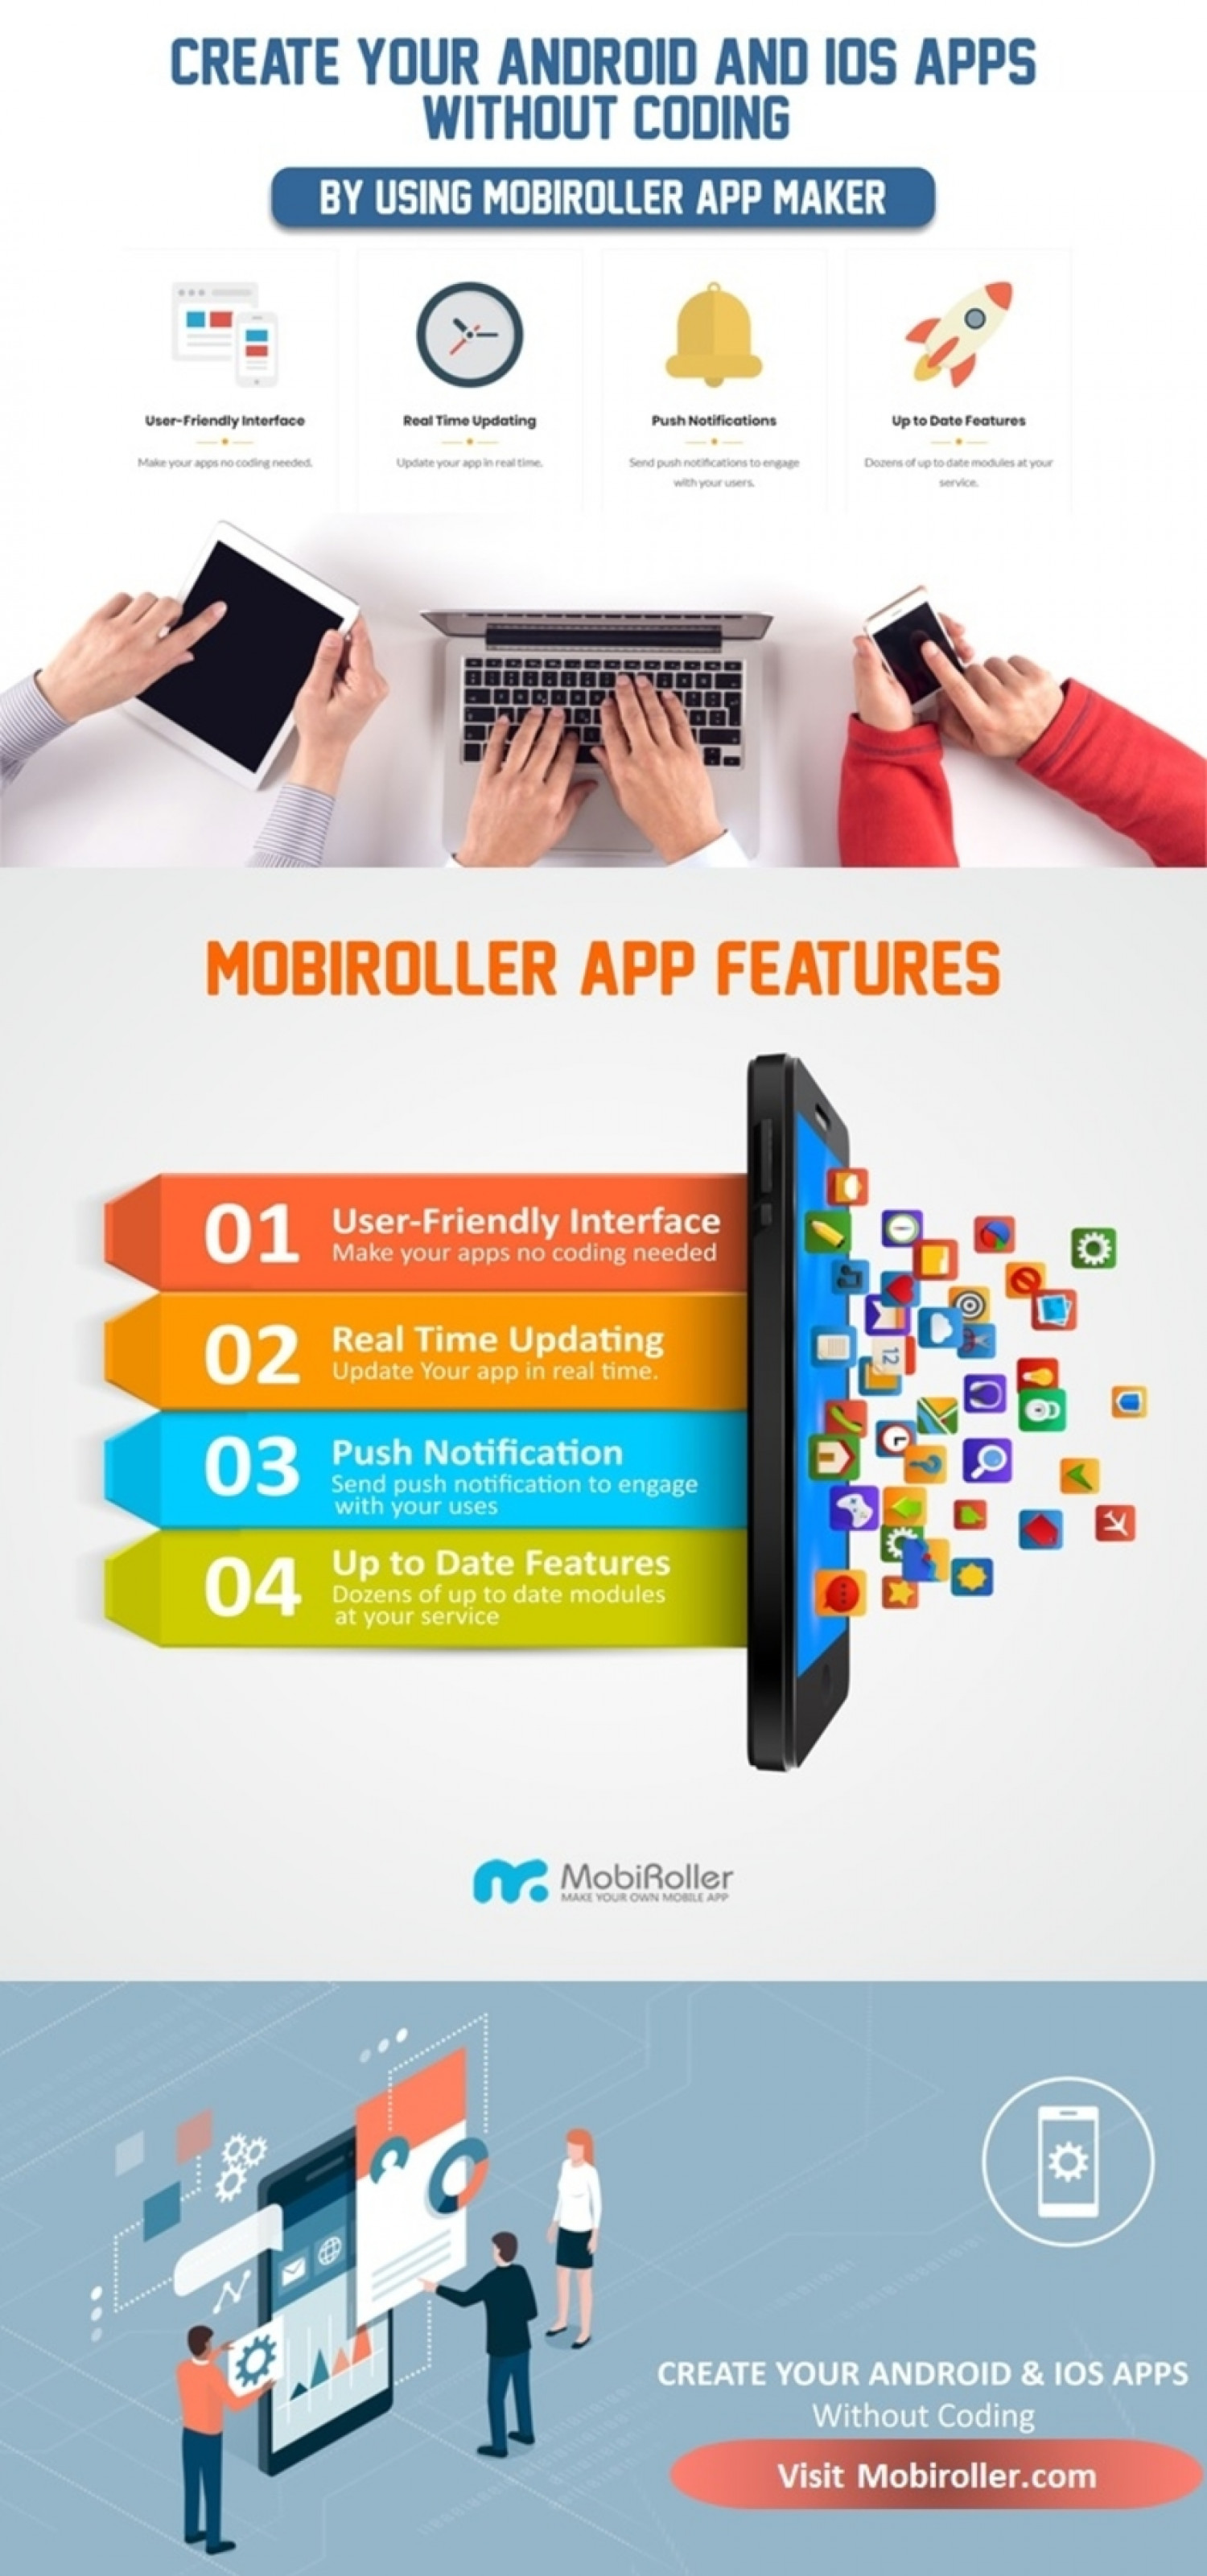 How to Create an Android App Without Coding? Infographic